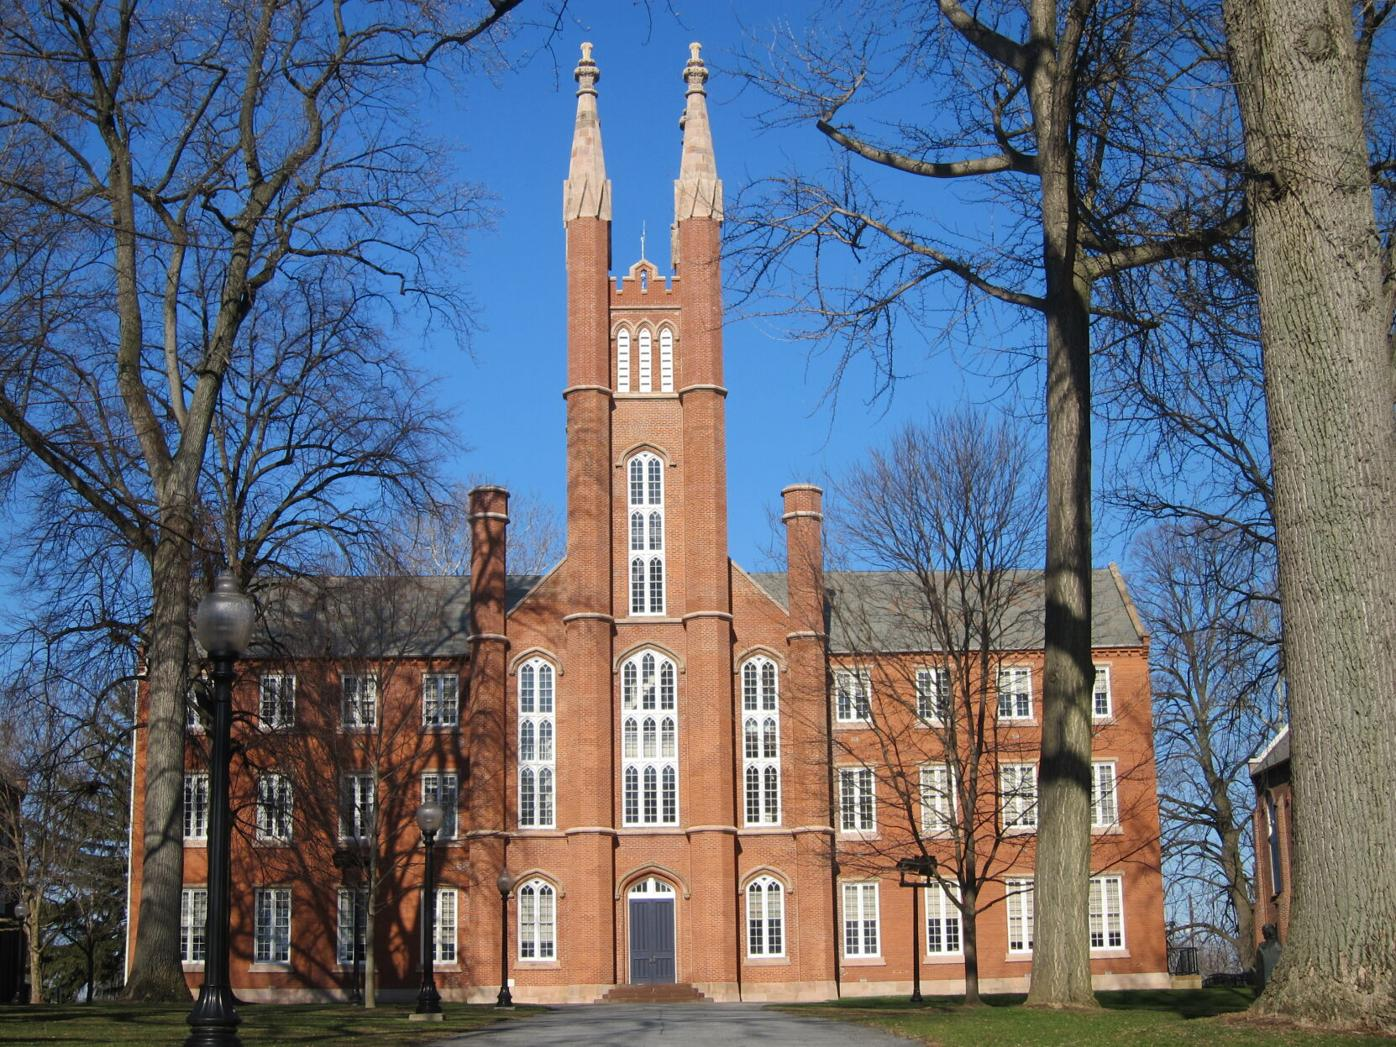 Gothic Revival architecture 3 F&M Old Main